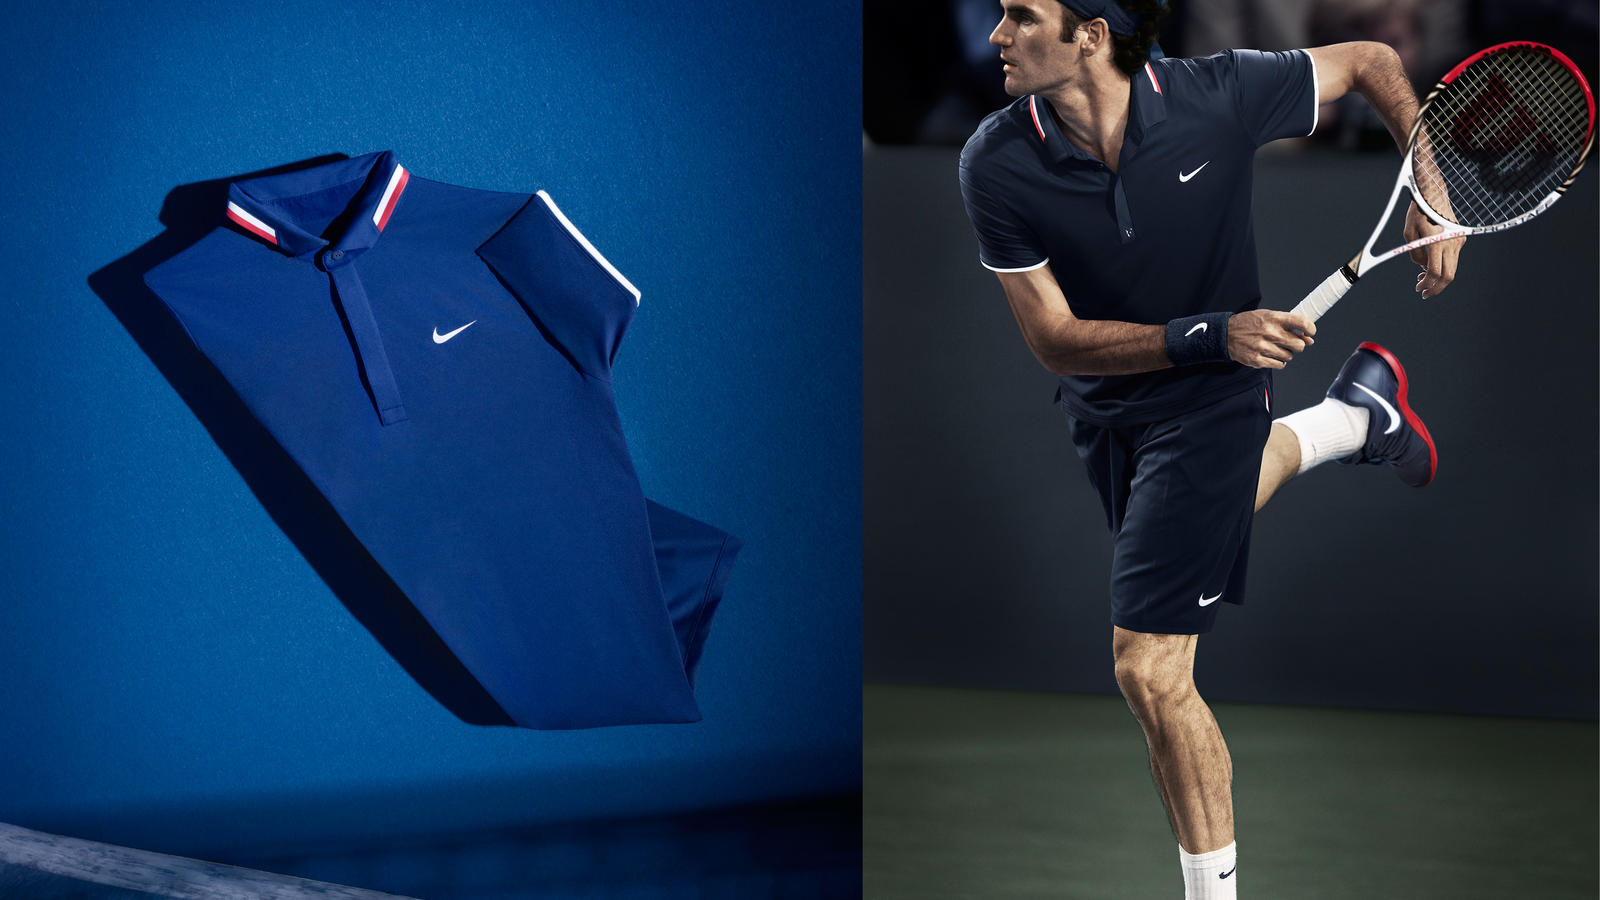 Nike_Tennis_New_York_Looks_Federer_2-up